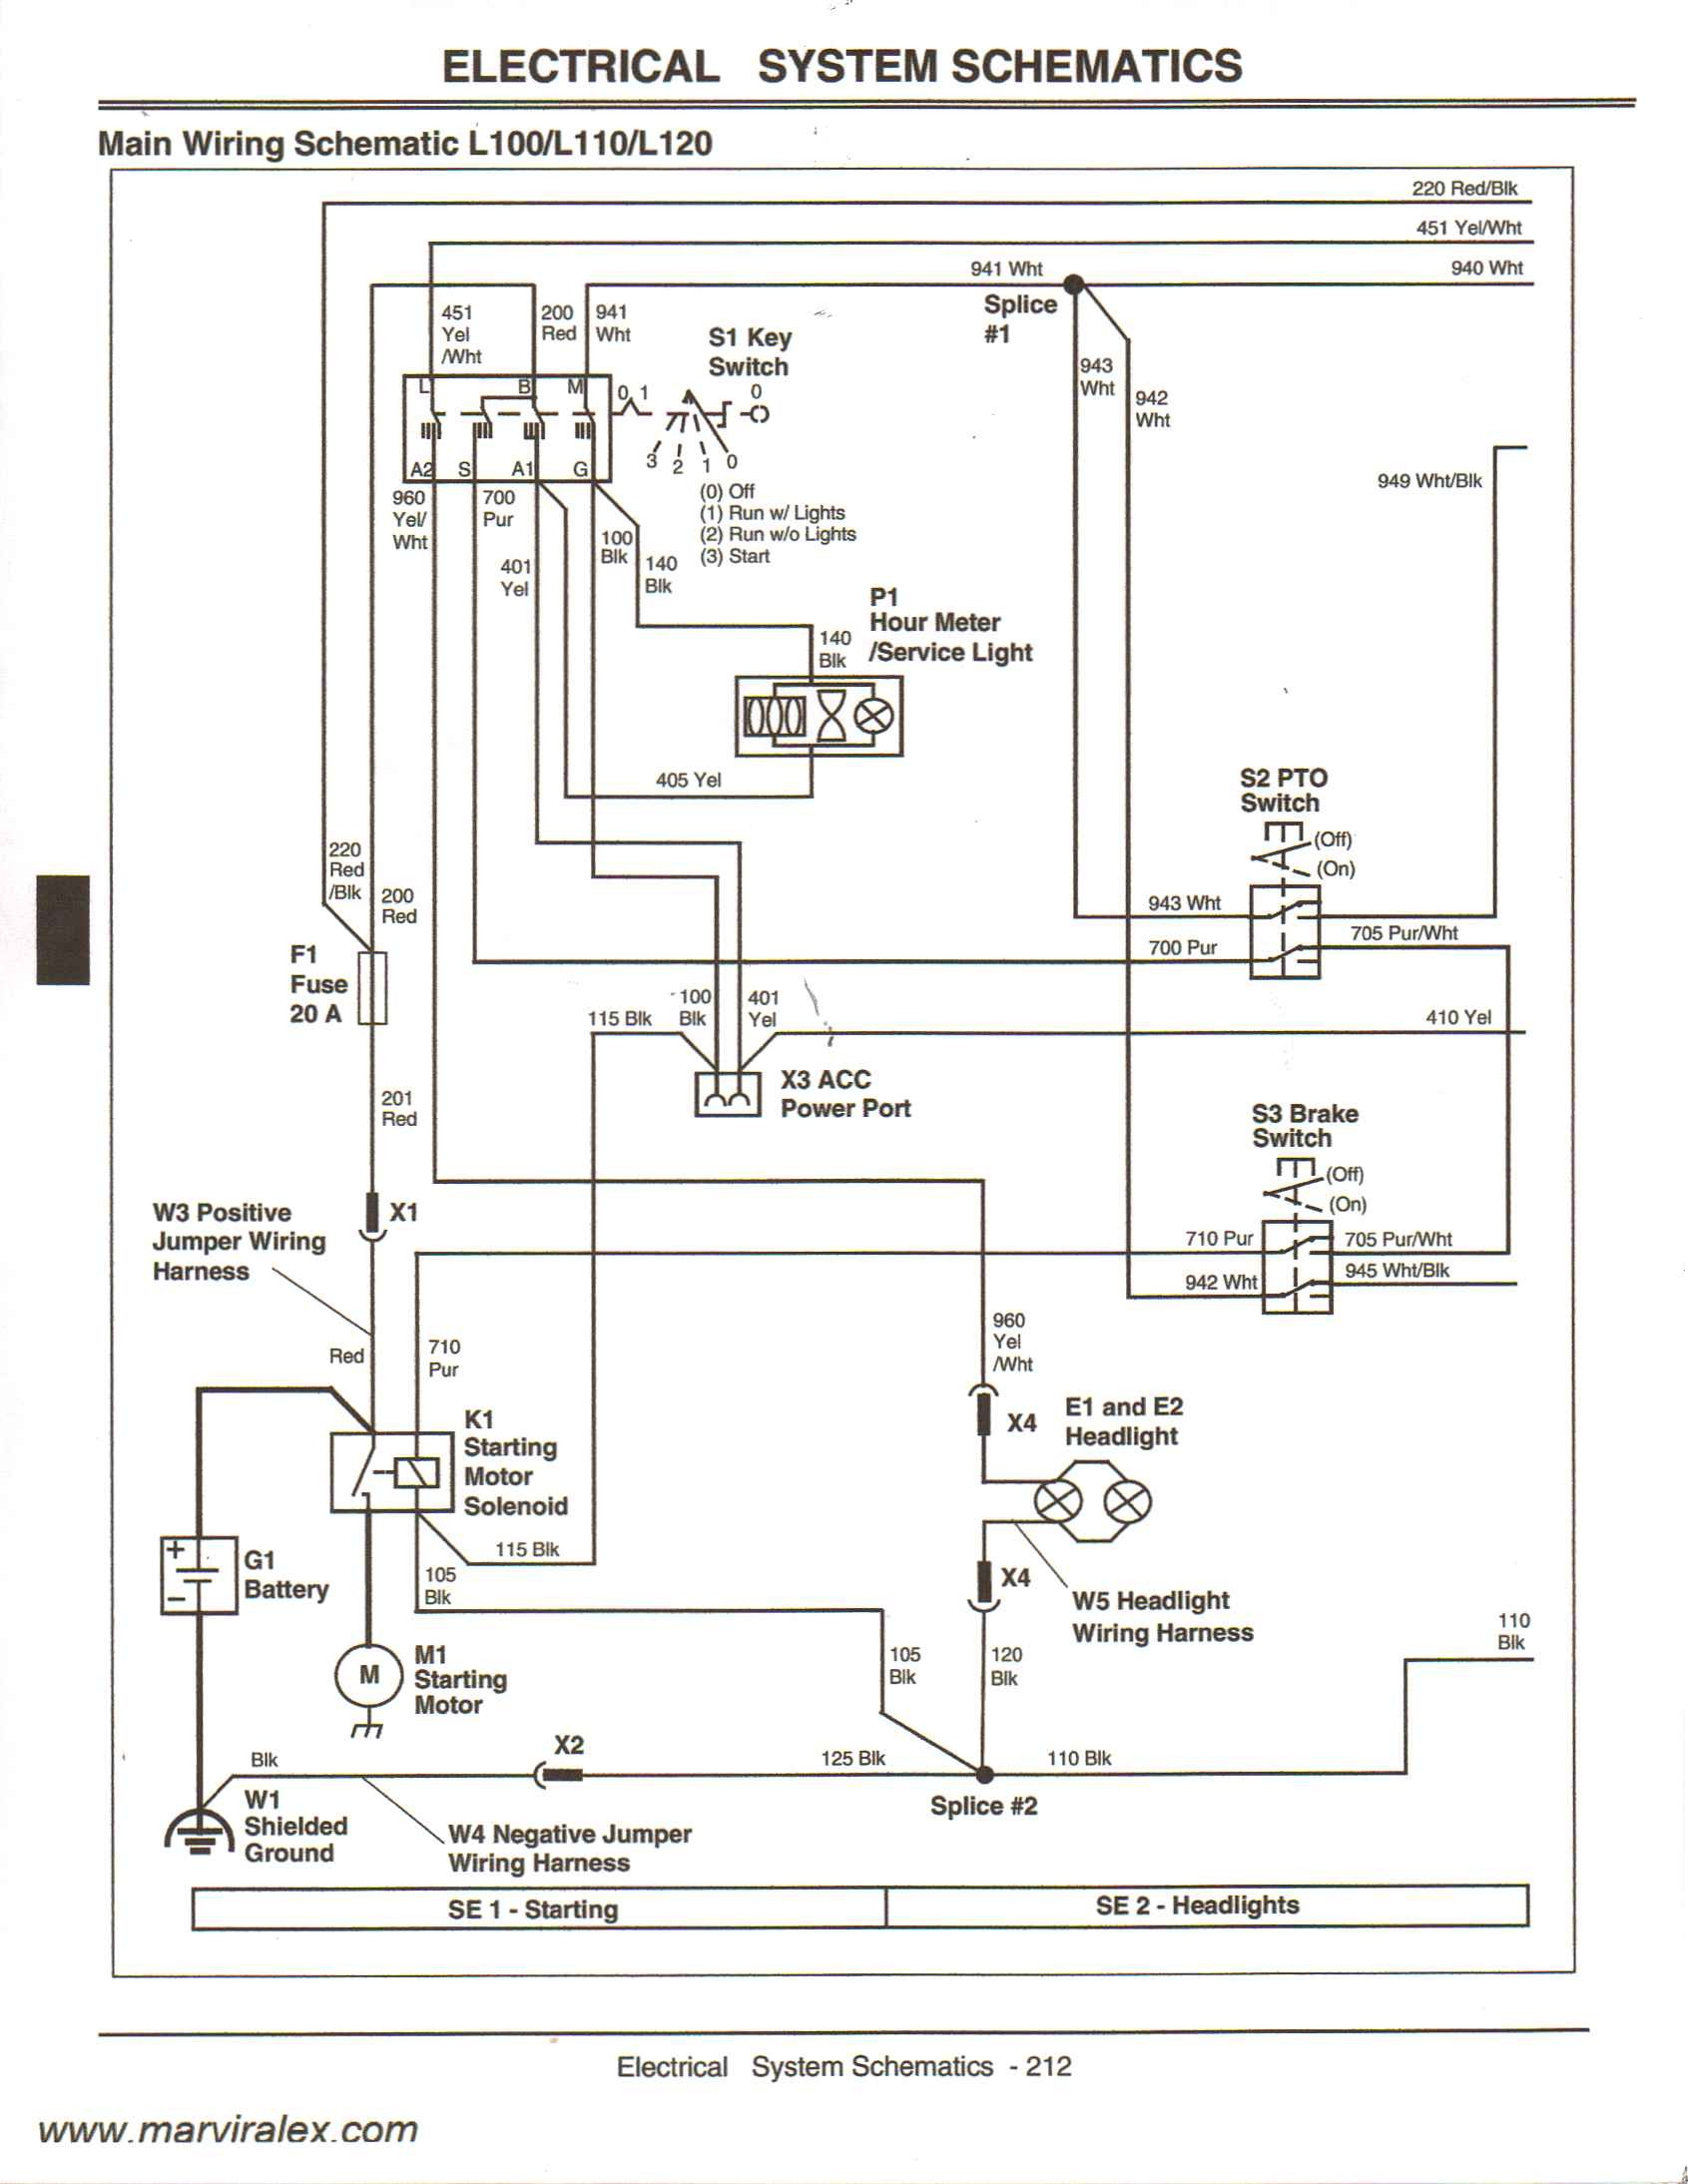 John Deere 314 Ignition Switch Wiring Diagram - 11.9.janmeijvogel.nl